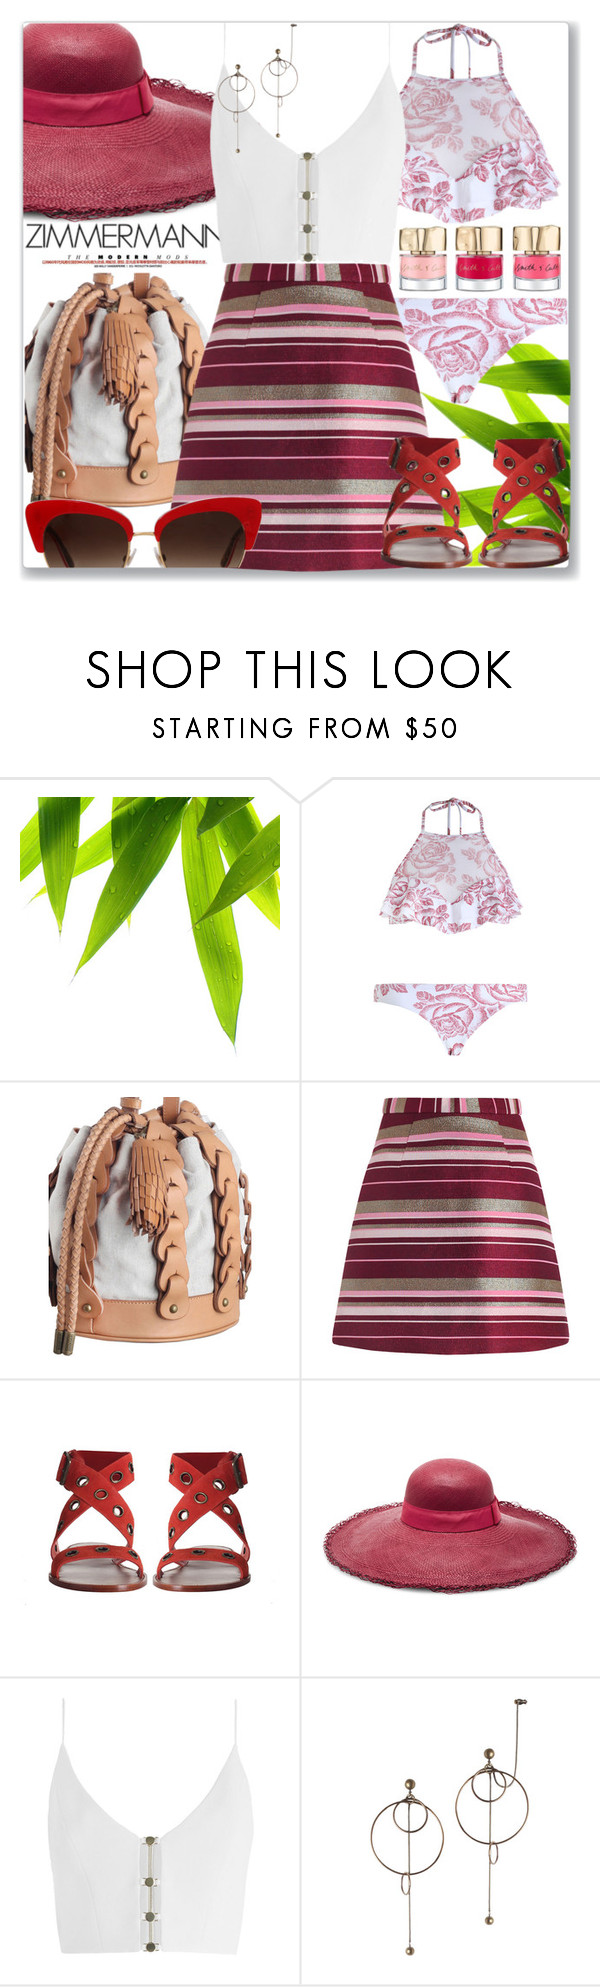 """""""At brunch"""" by jan31 ❤ liked on Polyvore featuring Zimmermann, Sensi Studio and Dolce&Gabbana"""